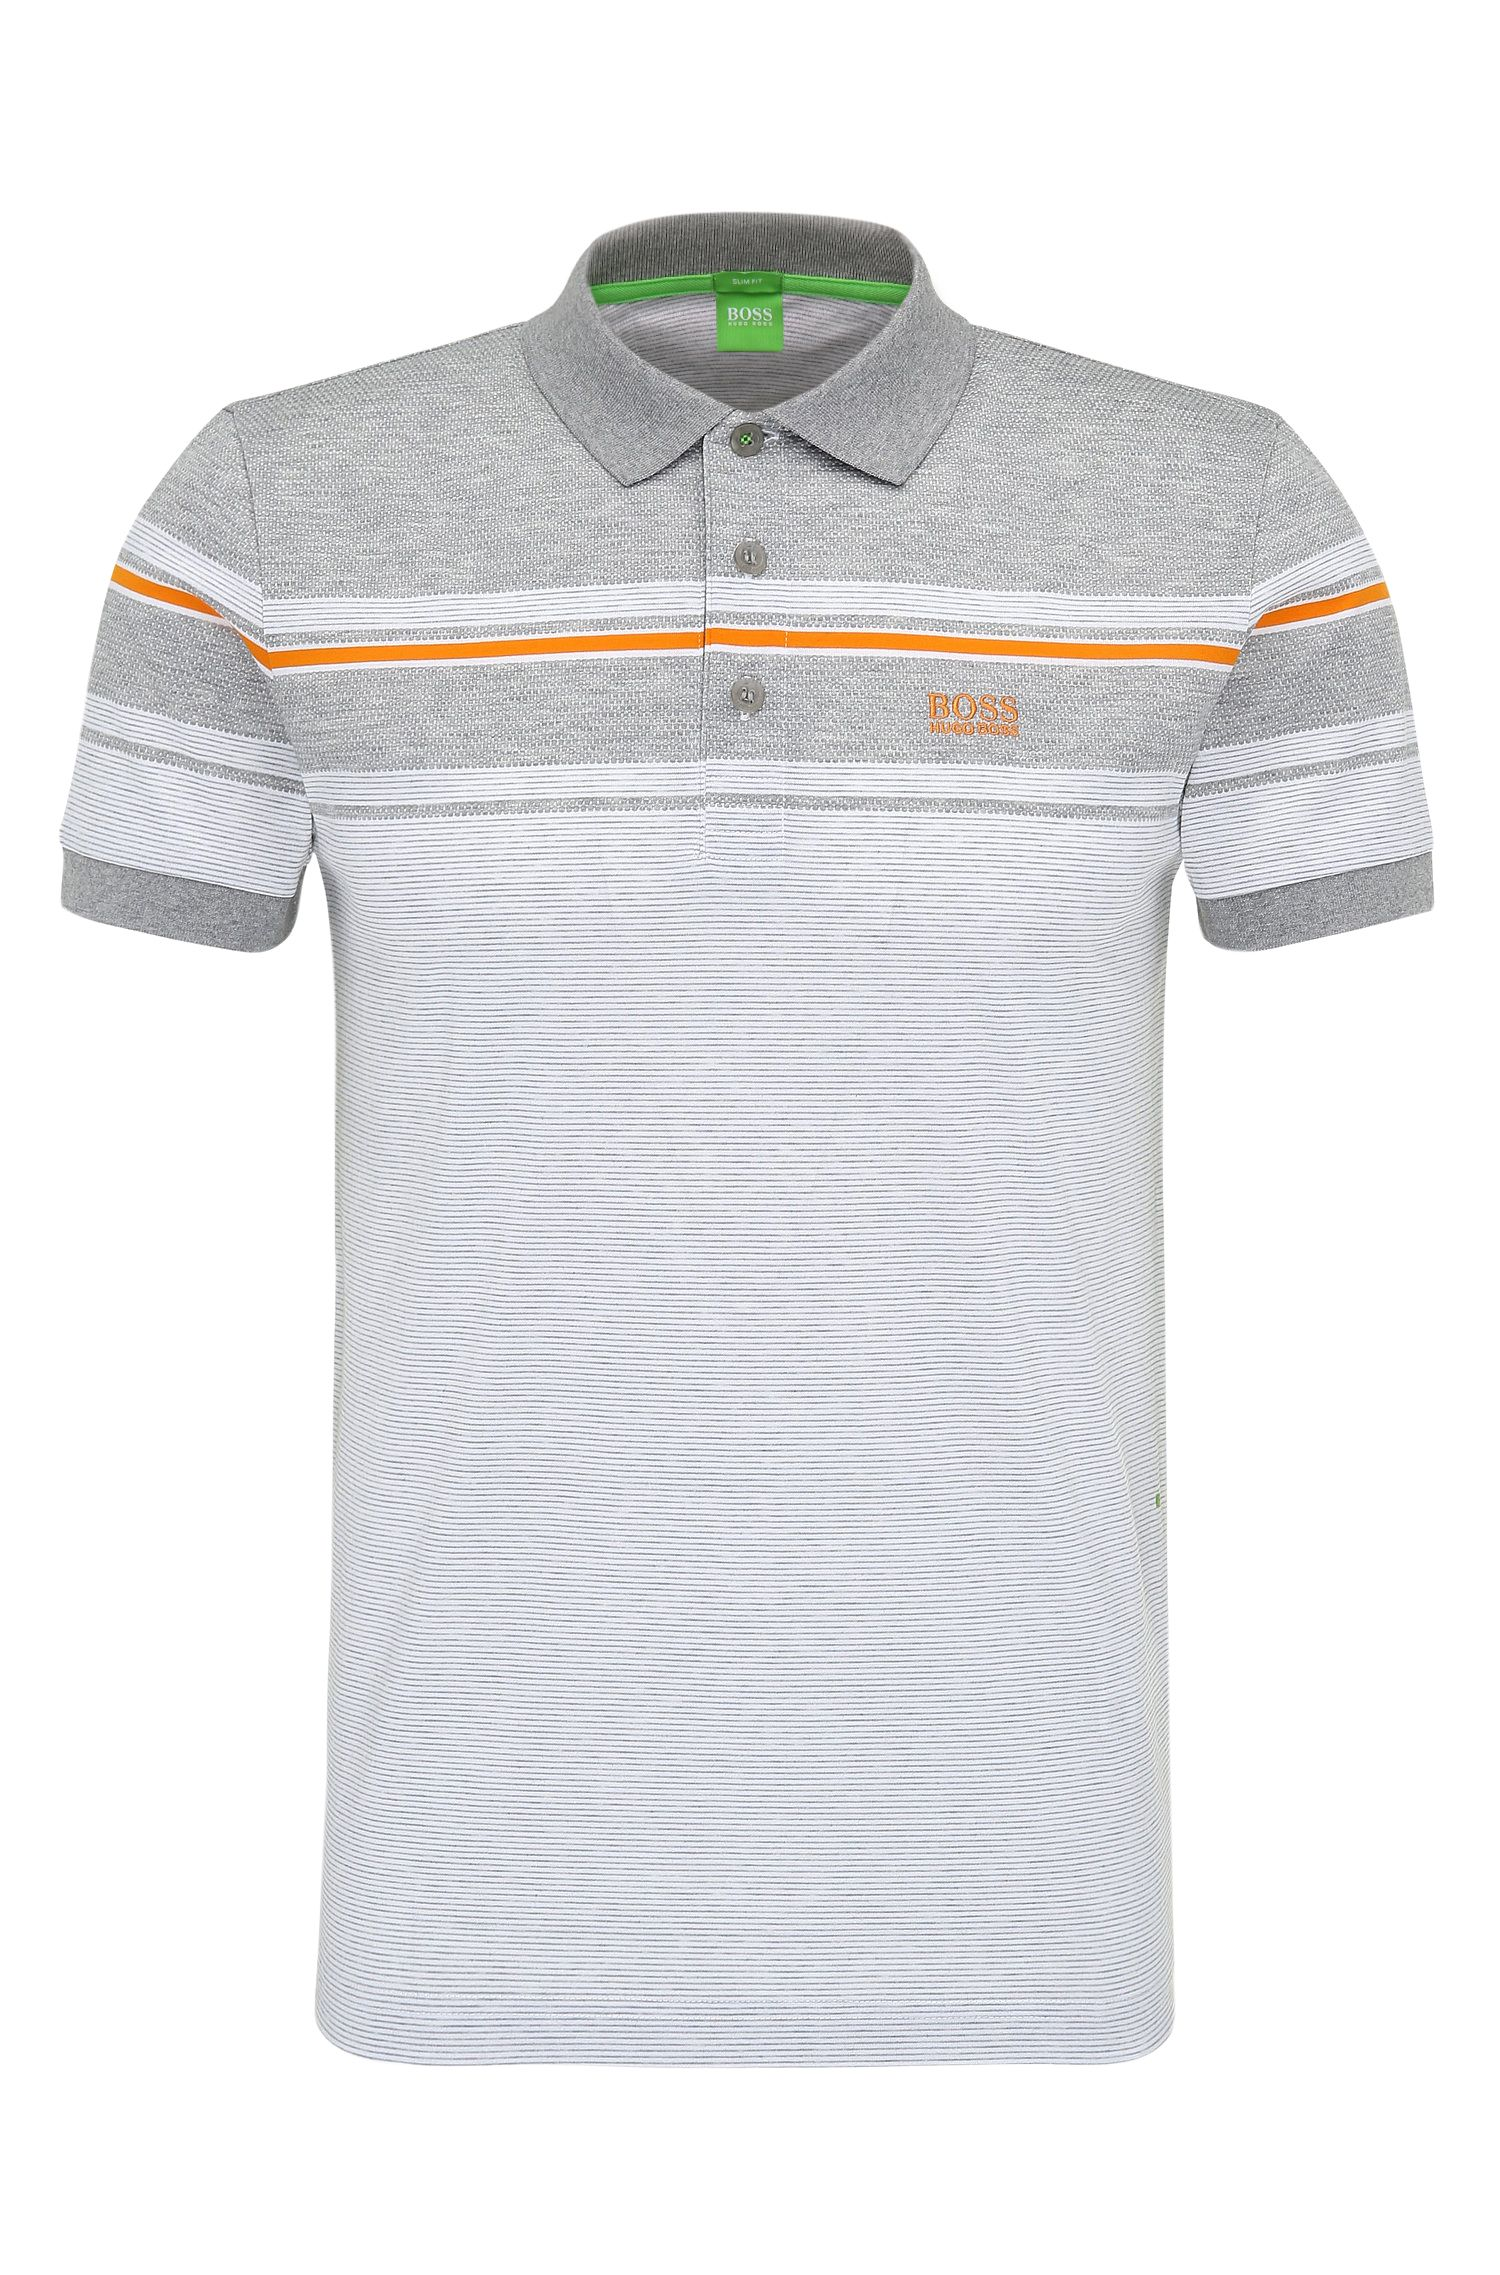 'Paule' | Slim Fit, Striped Cotton Polo Shirt